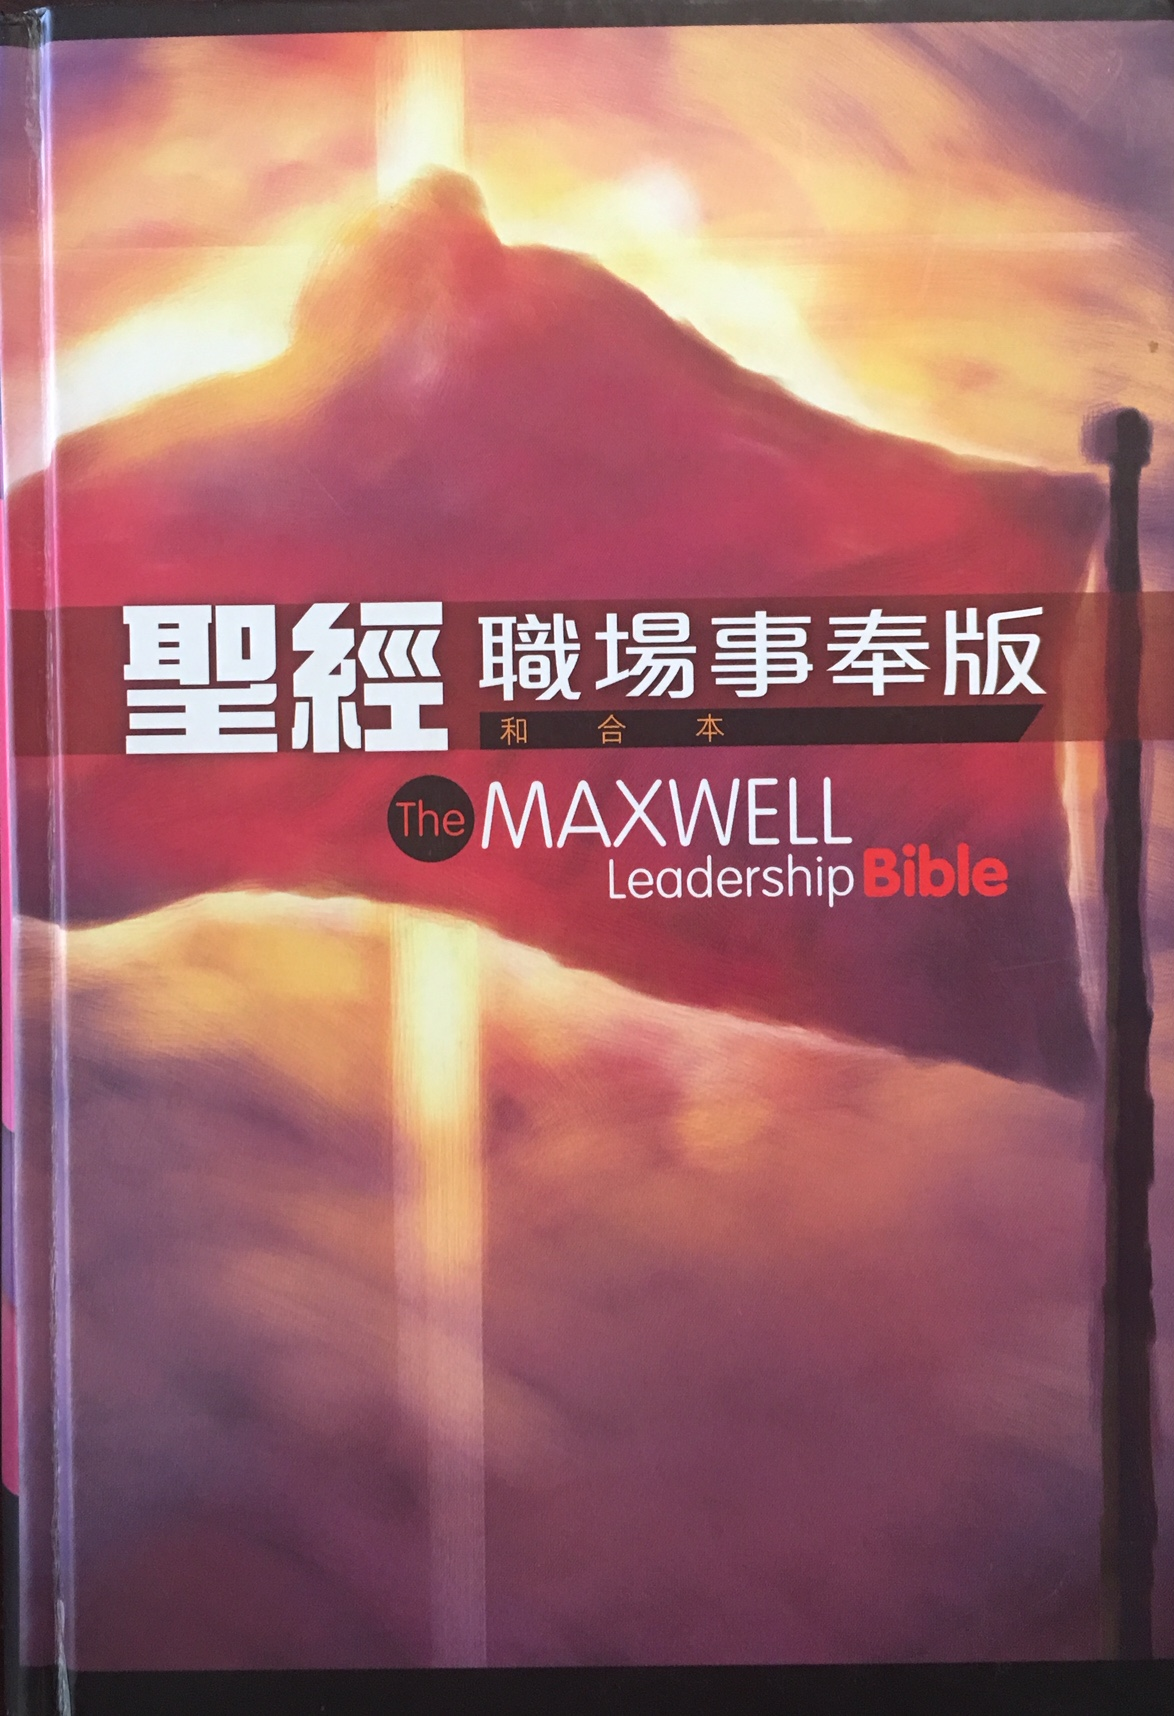 Image for The Maxwell Leadership Bible, Union Version, Traditional, Hardcover